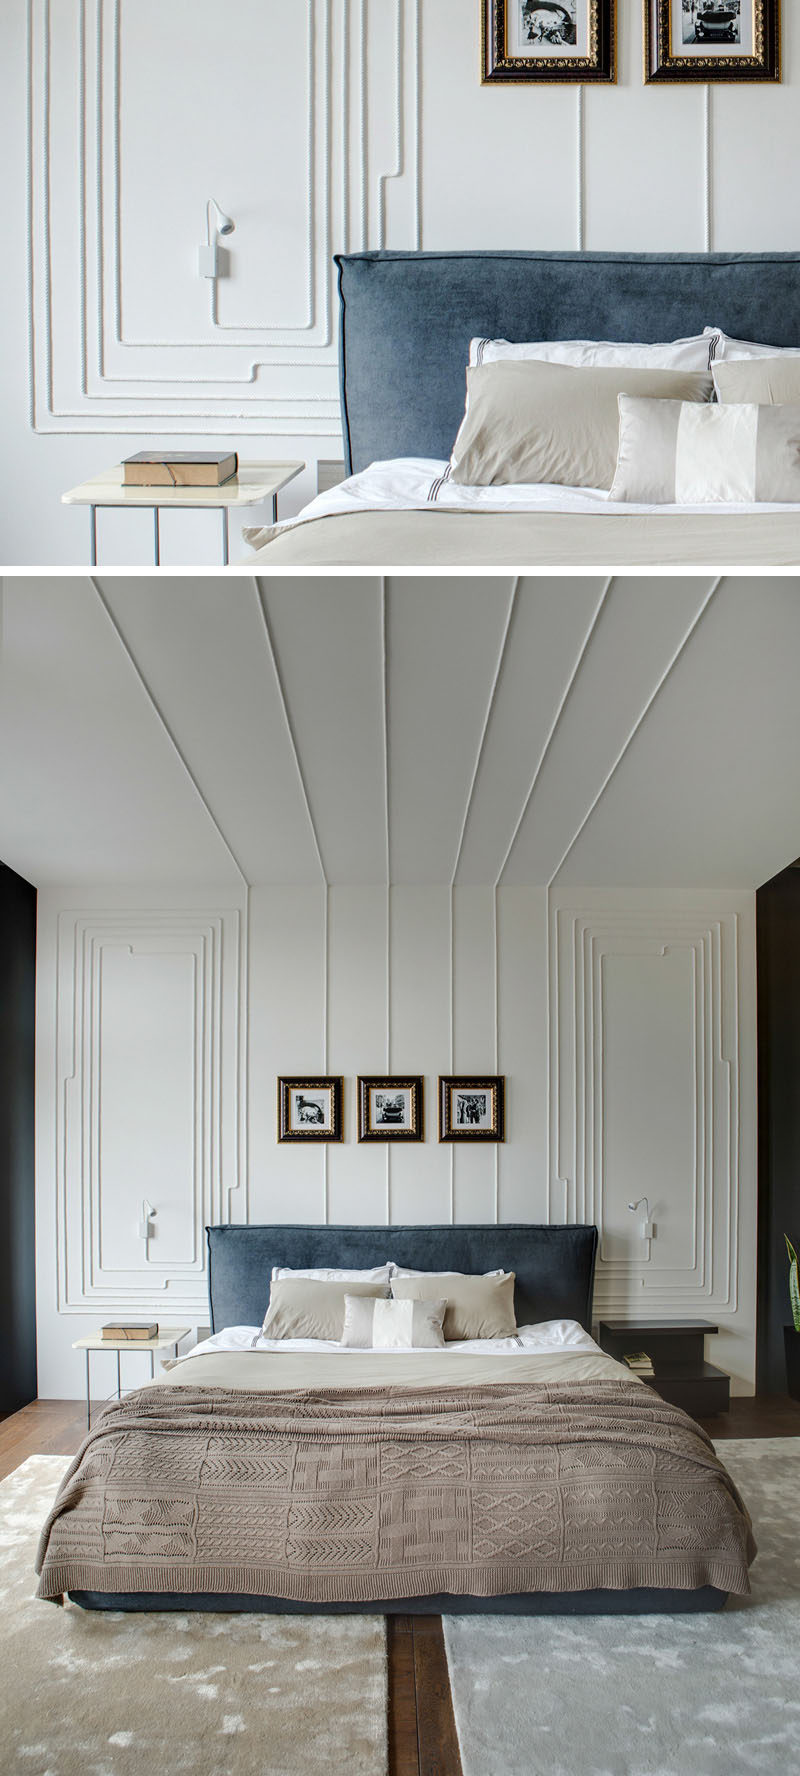 Electrical cords were used to create an artistic wall in this bedroom.